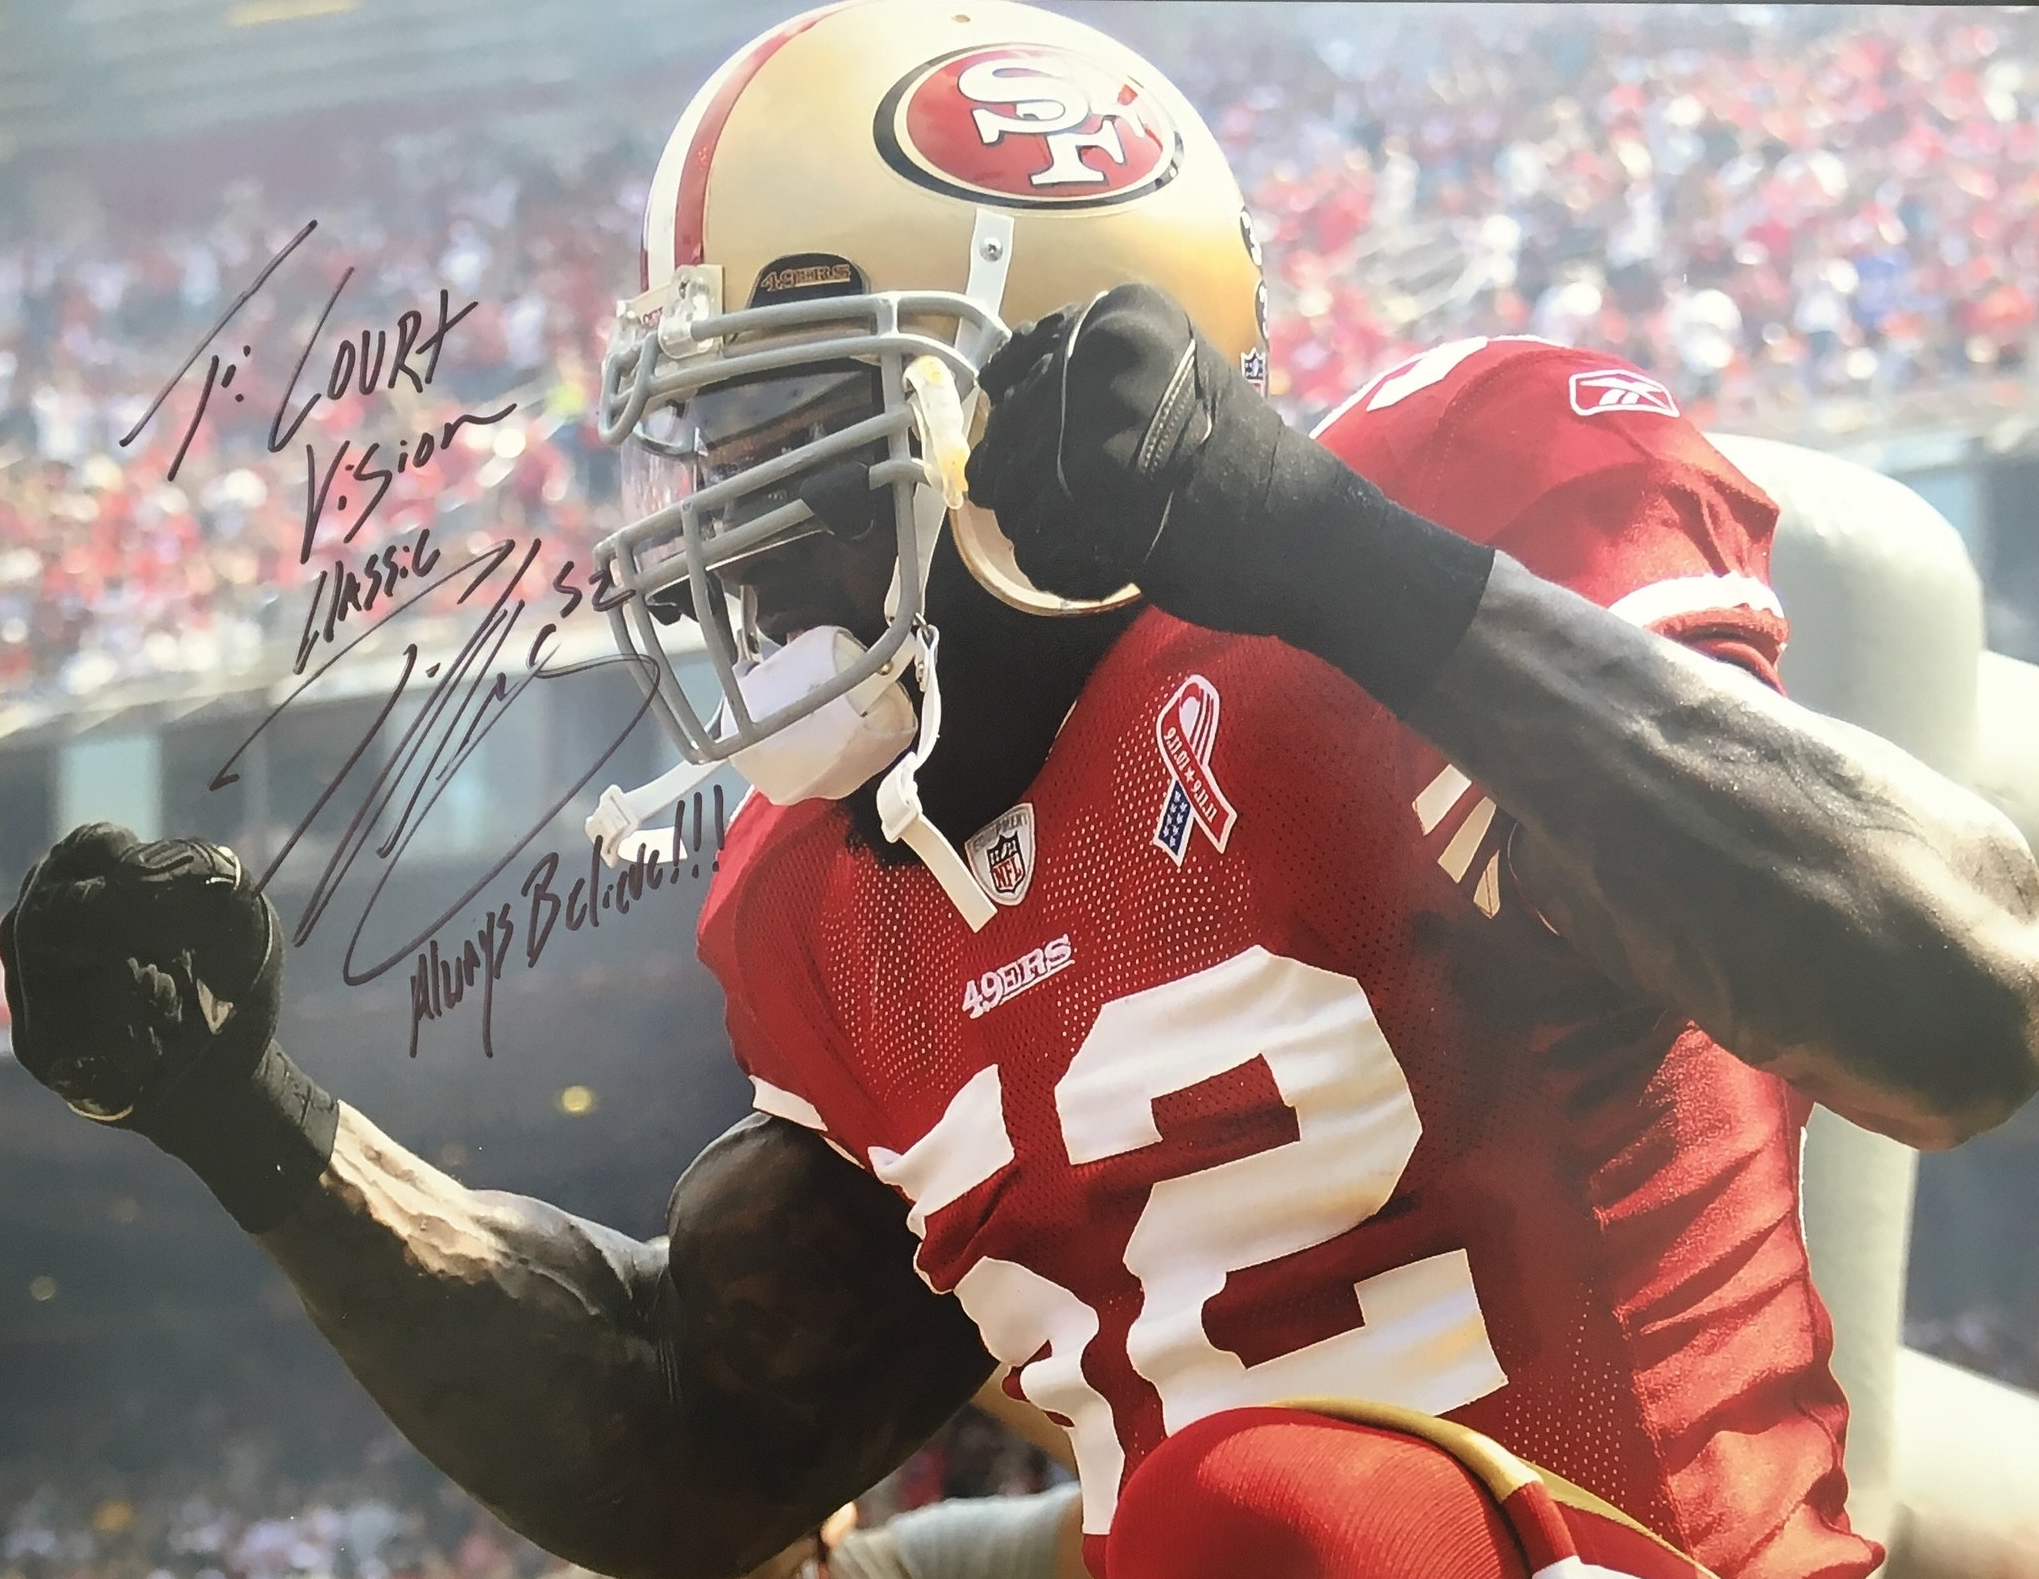 Patrick Willis showed up last year. You never know who's next... - The legendary 49ers linebacker personally donated and signed pictures and merchandise, which we raffled off at Court Vision Classics.